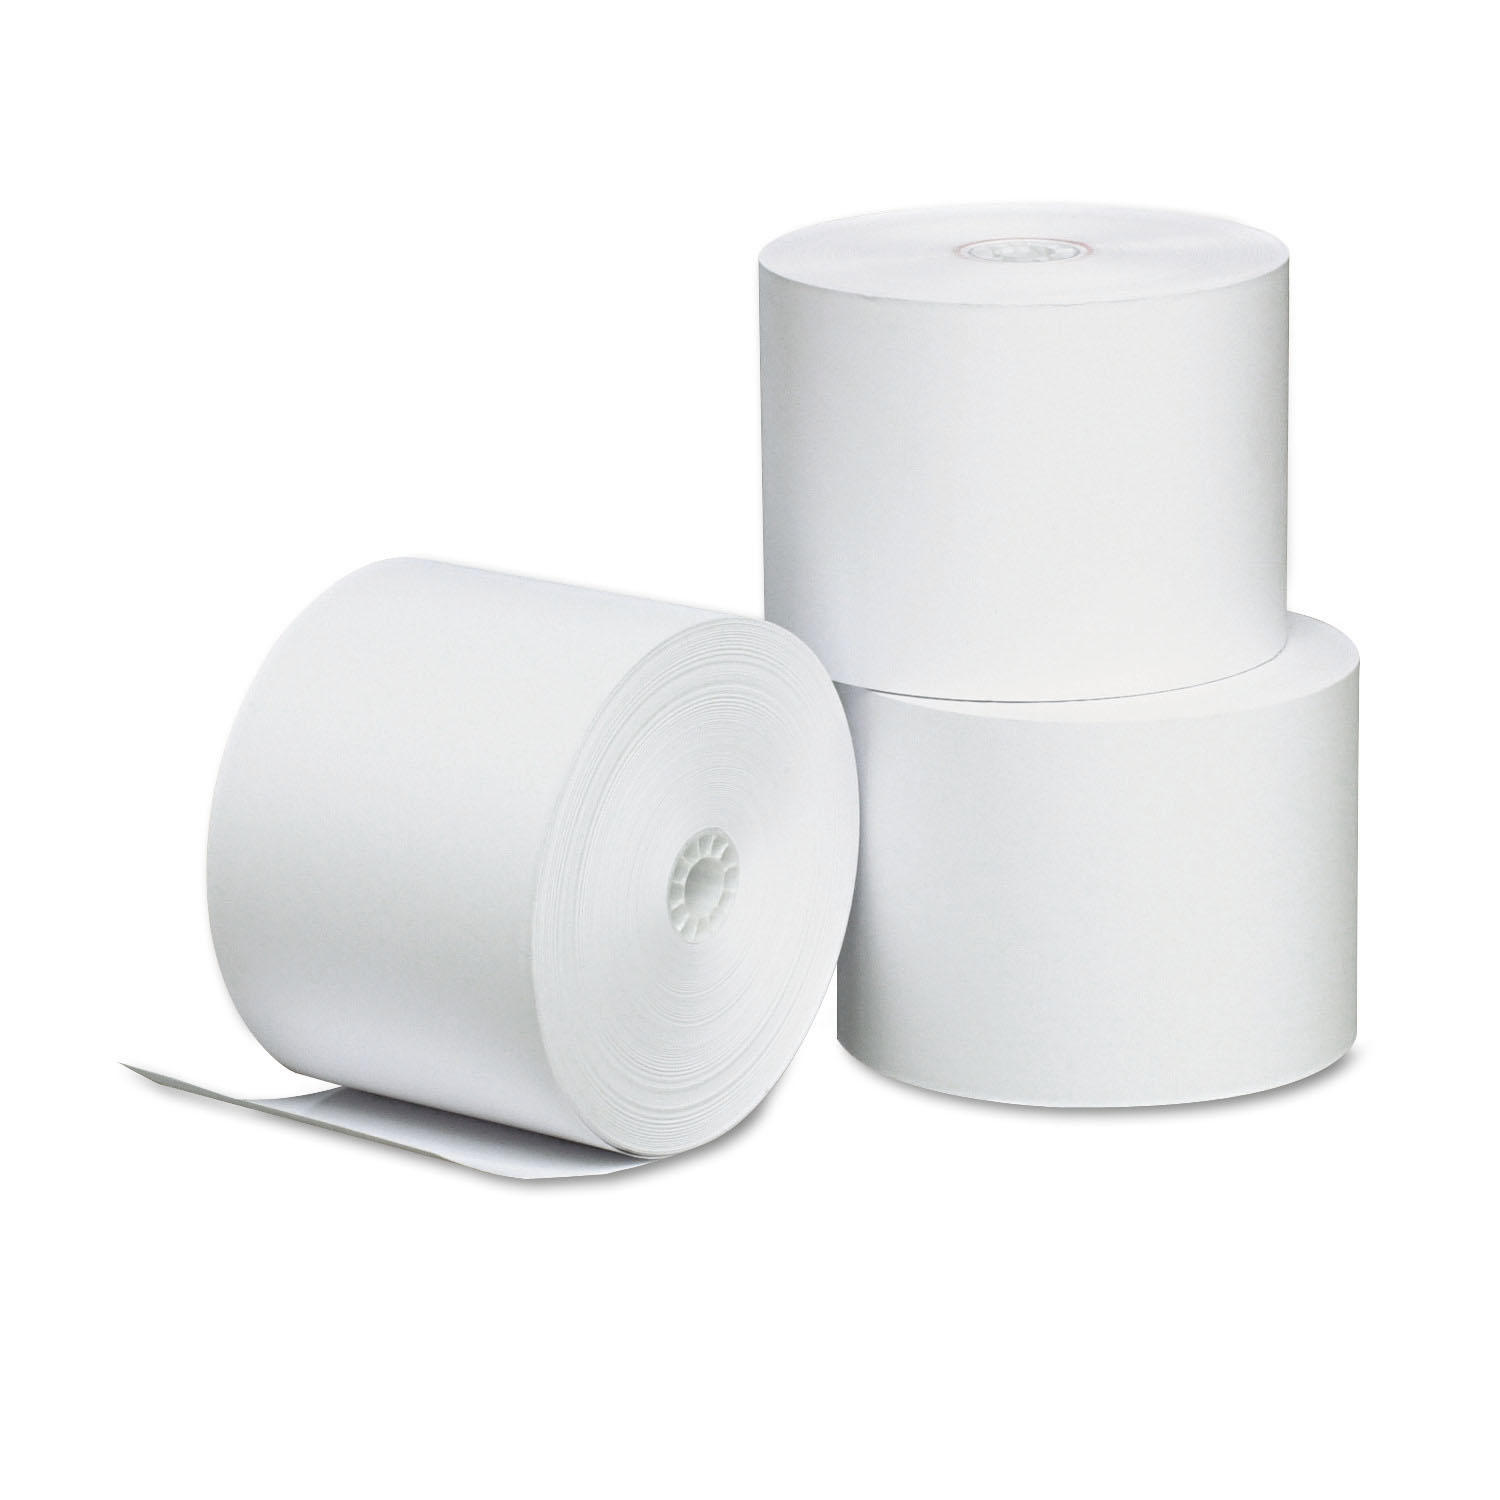 "Single-Ply Thermal Paper Rolls, 2 1/4"" x 165 ft, White, 3/Pack"